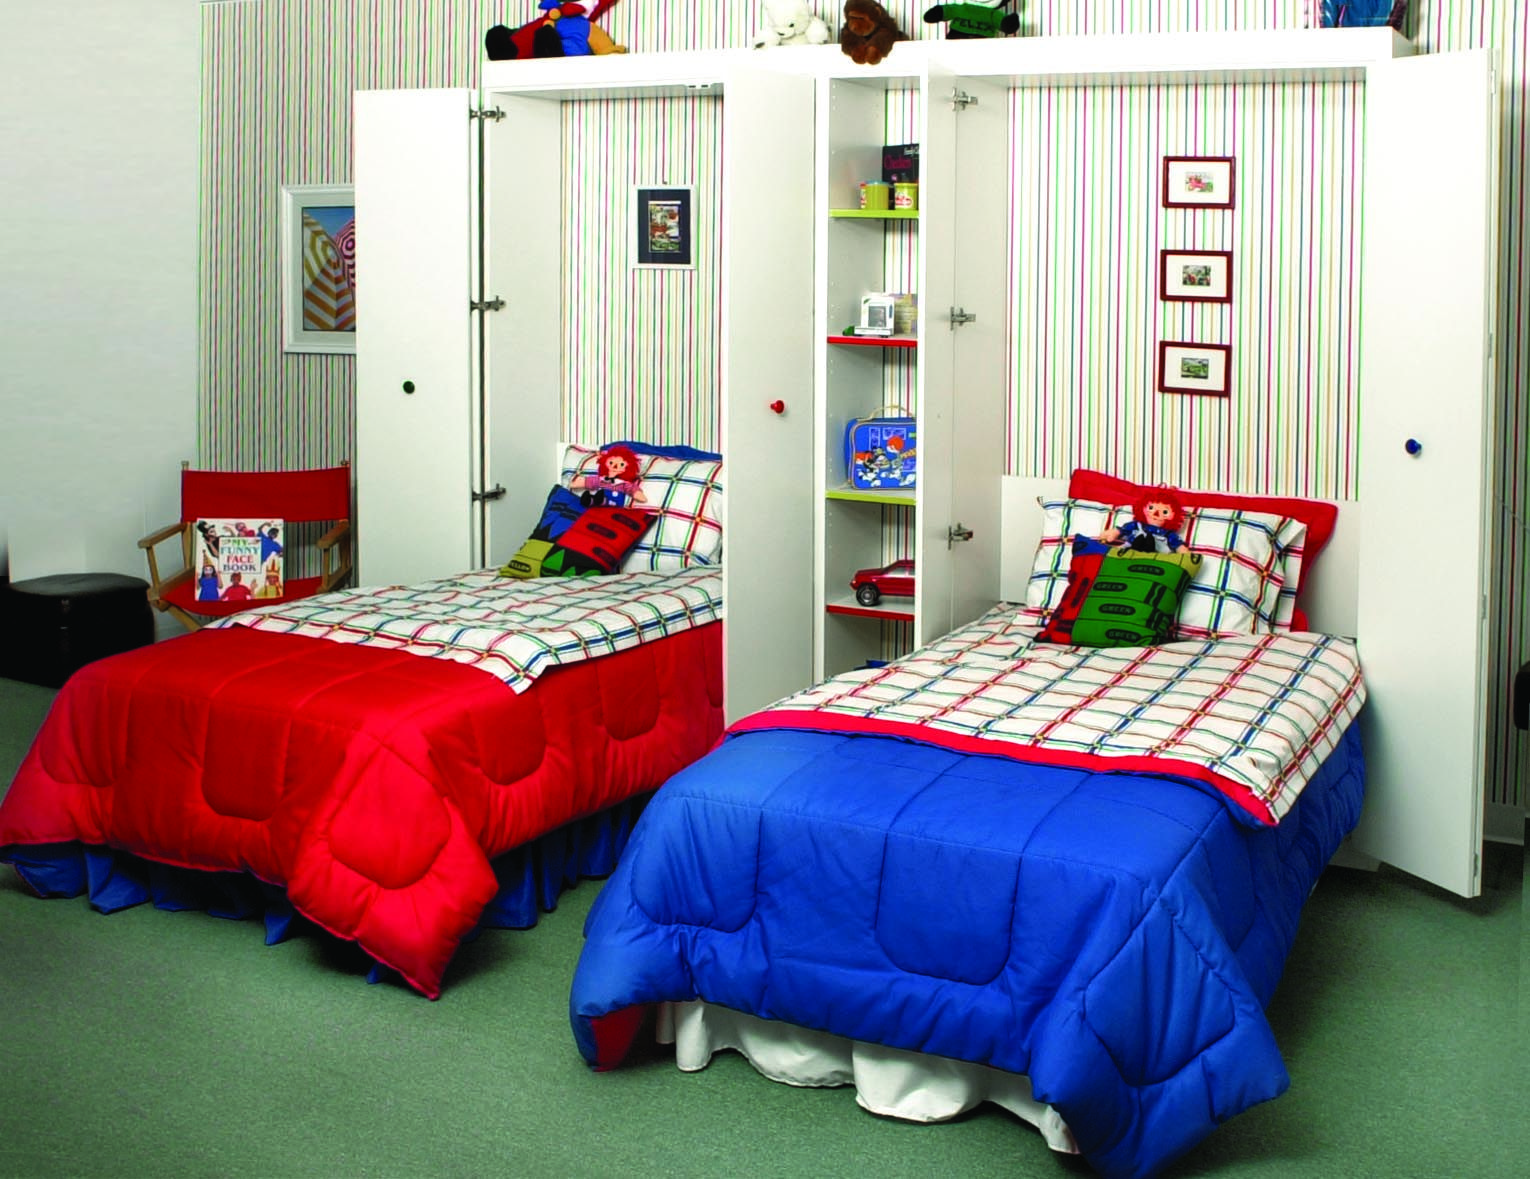 Small Kids Bed Beauteous Spacesaving Kids Beds  Kids Bed Design Bed Design And Murphy Bed Inspiration Design